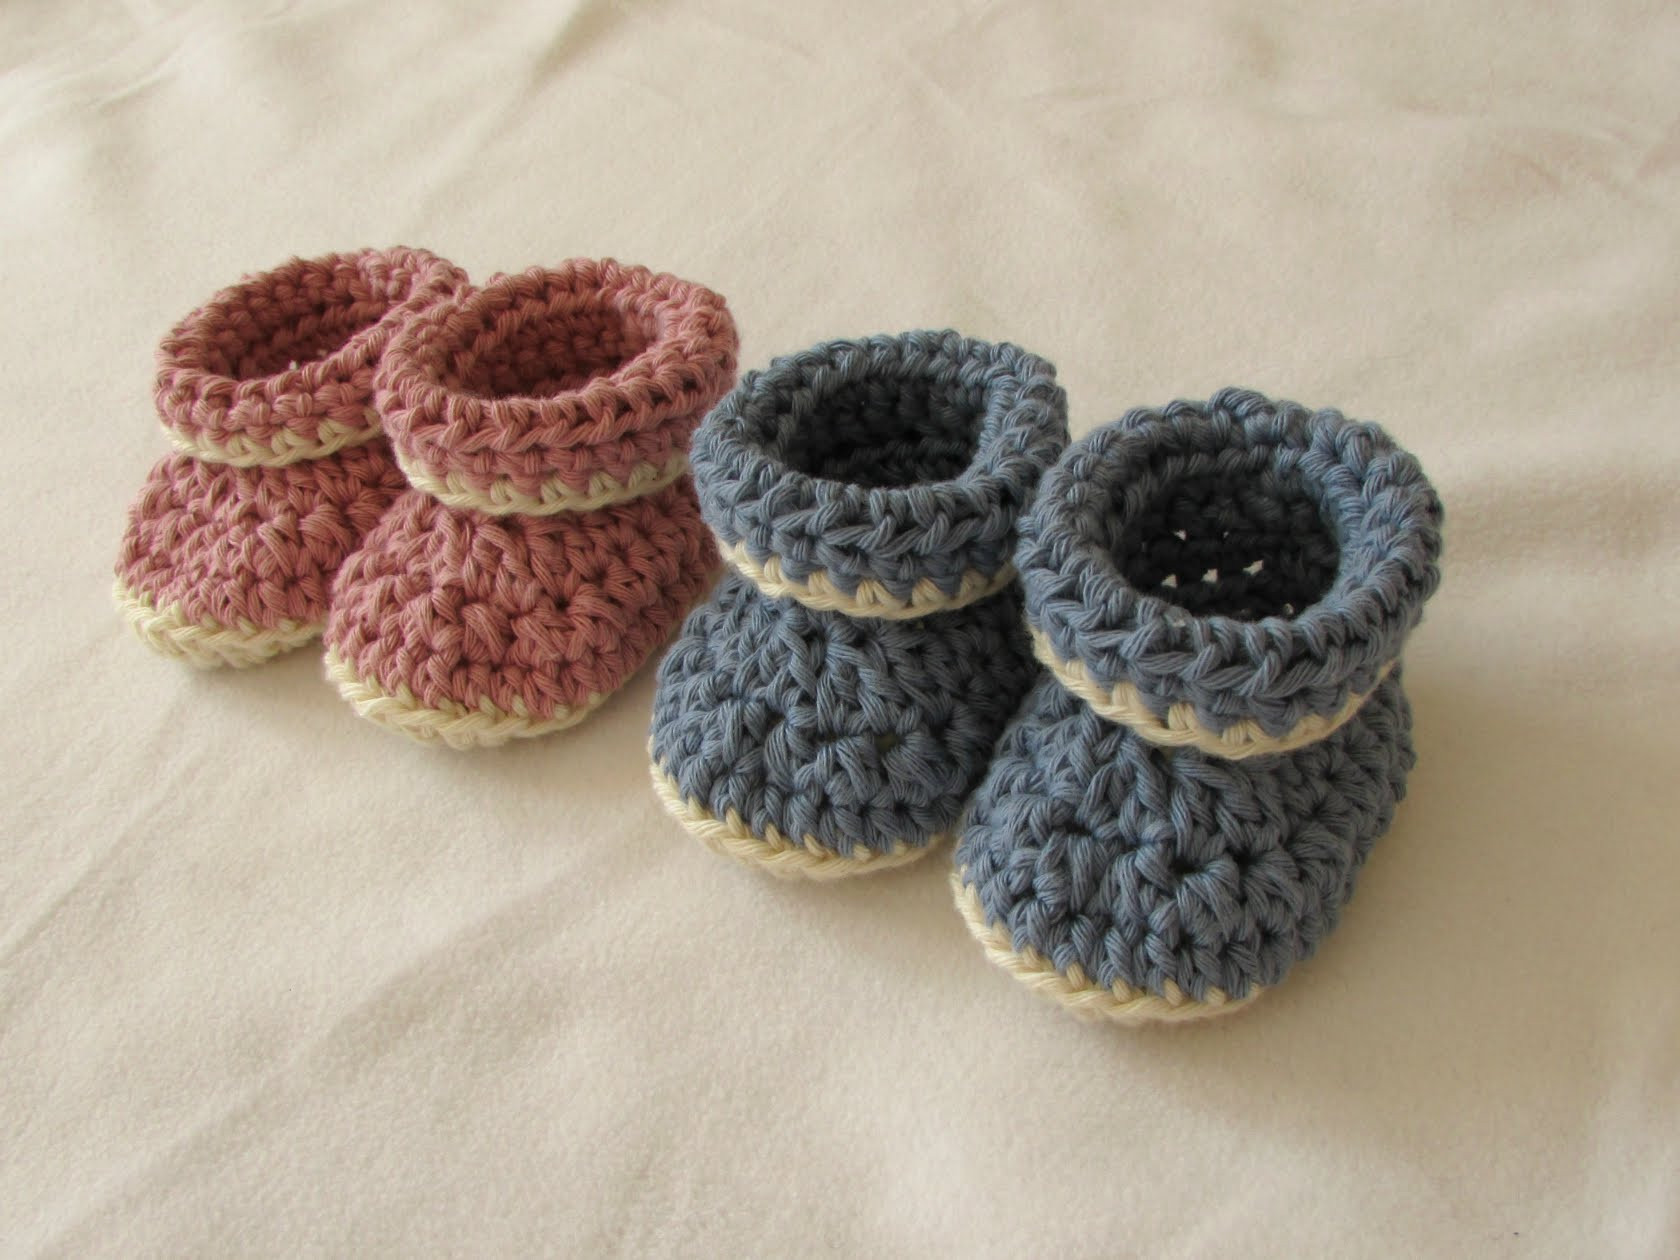 Baby Booties Crochet Pattern for Beginners Lovely 36 Easy & Free Crochet Baby Booties Patterns for Your Angel Of Perfect 47 Ideas Baby Booties Crochet Pattern for Beginners